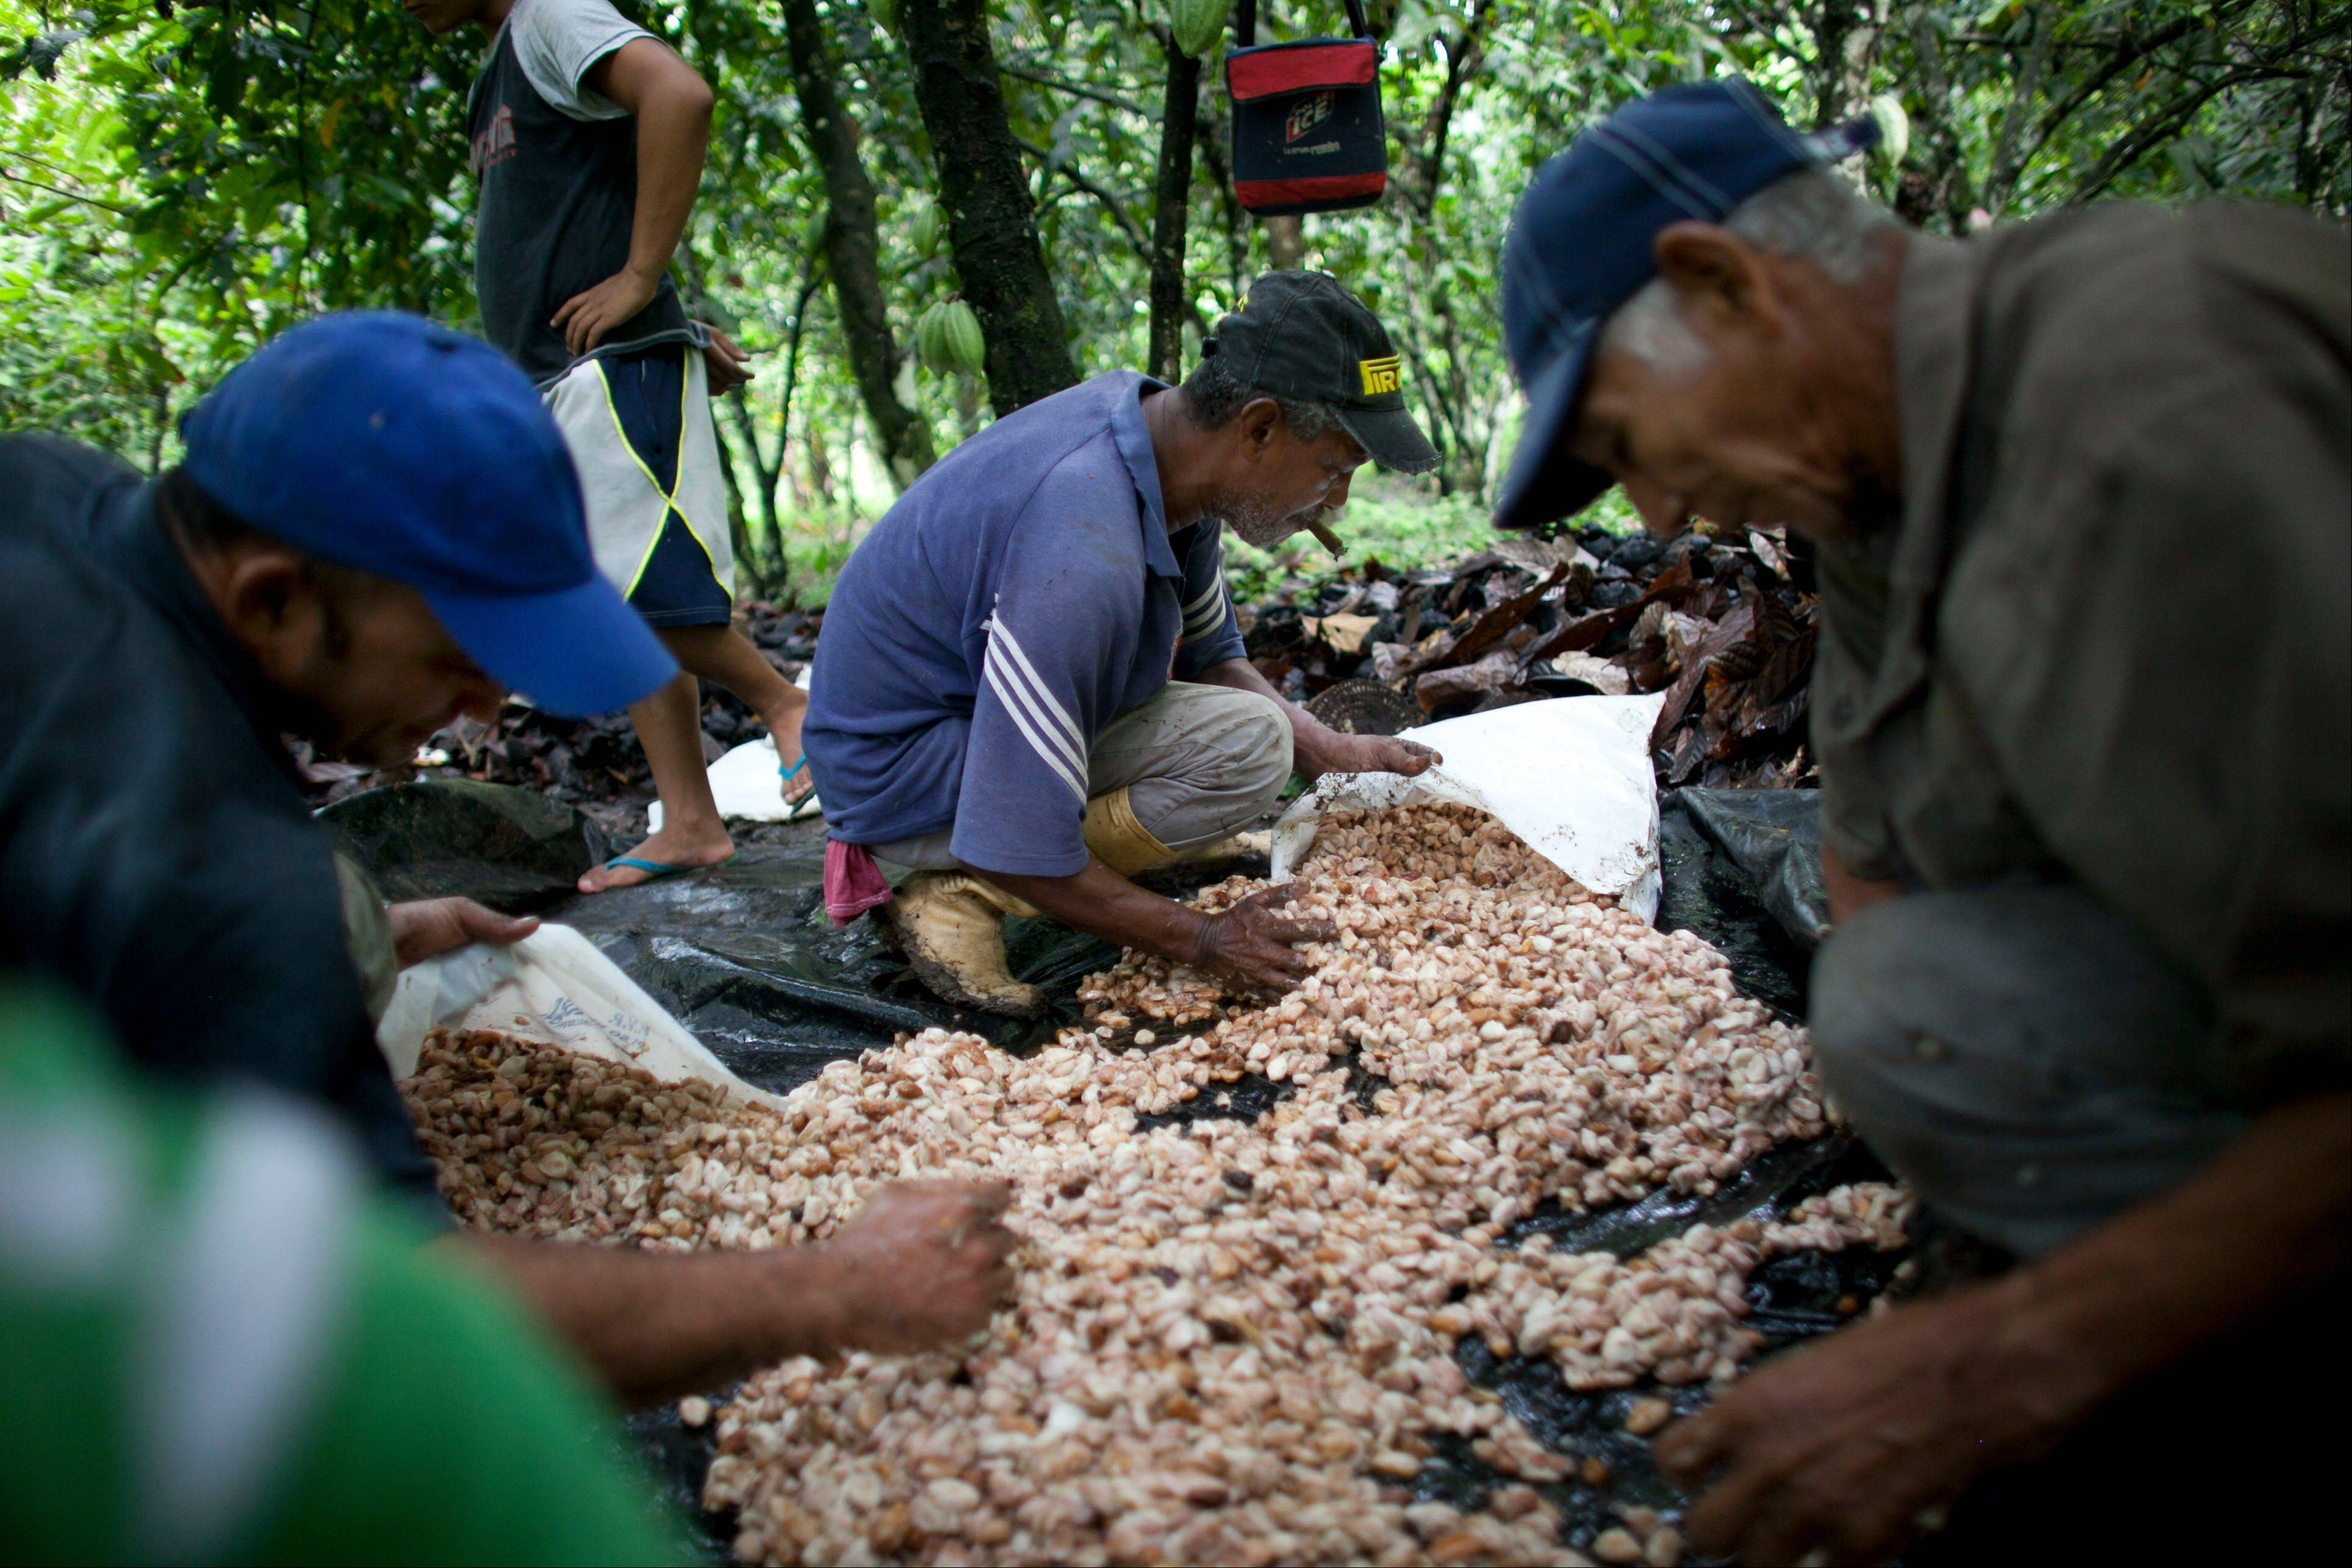 Grower Pablo Planchar, center, and workers gather the pulp and seeds they scooped from cacao pods into sacks, at a cacao plantation in Cano Rico, Venezuela. Cacao pods that ripen in the forest-shaded plantations of Venezuela are transformed into some of the world's finest chocolate.